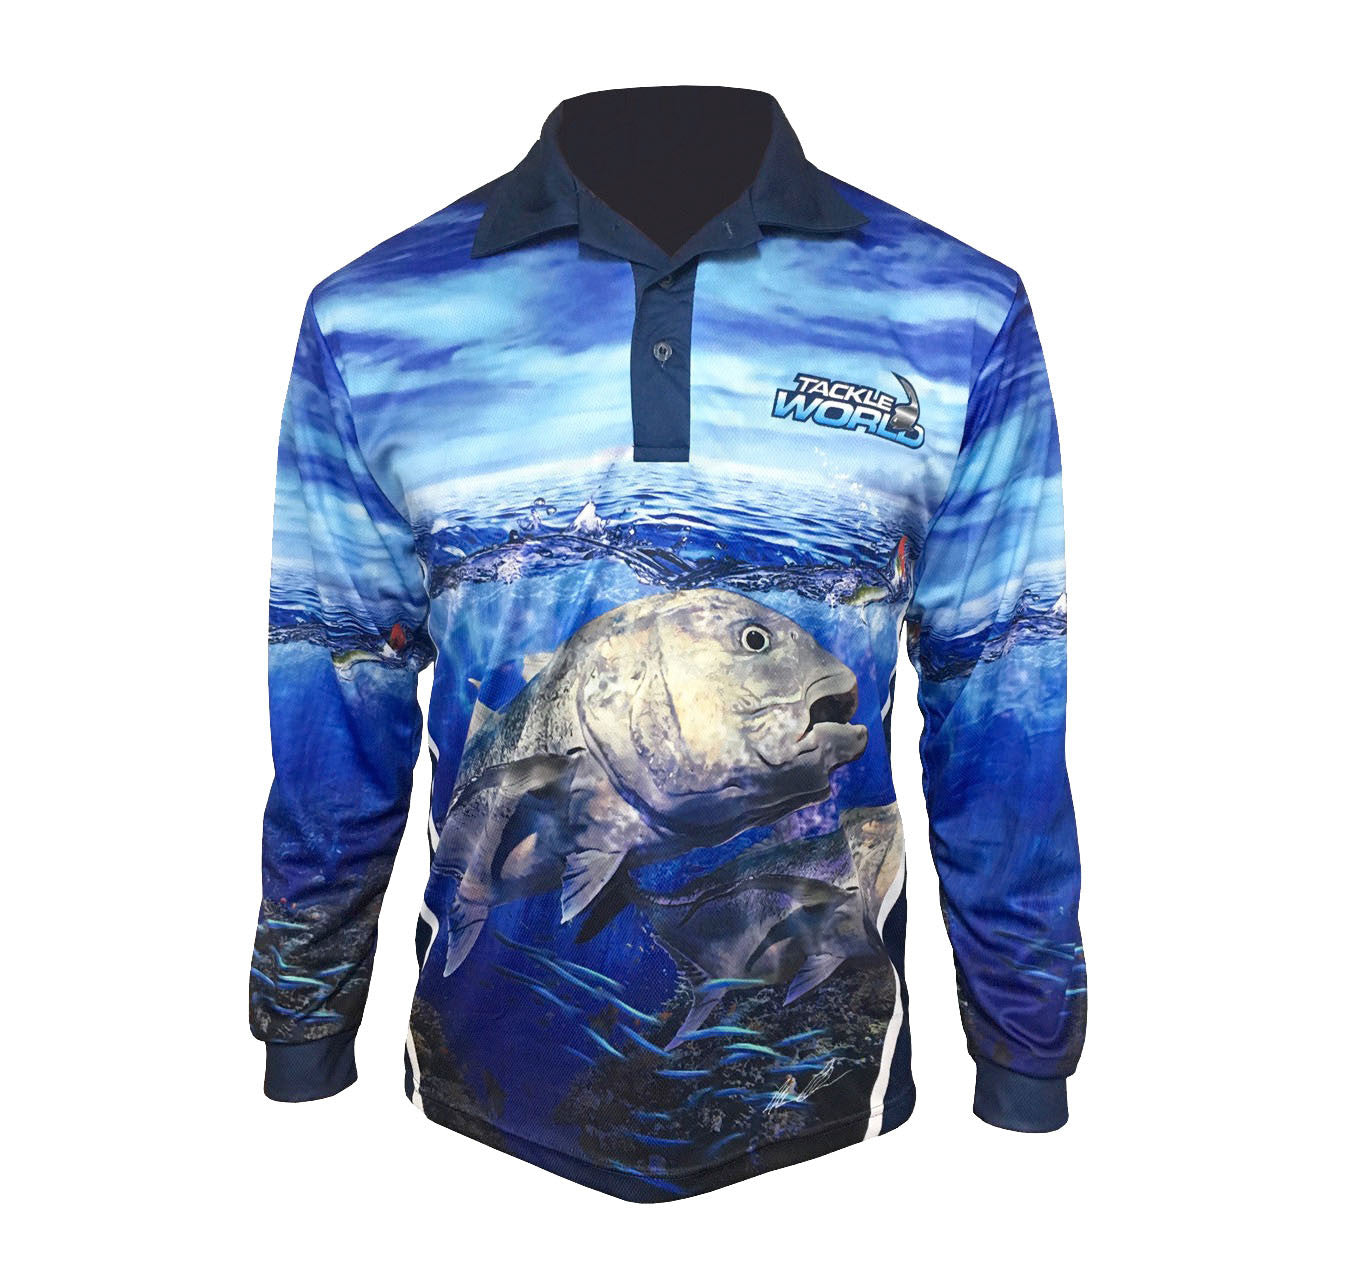 Tackleworld GT Long Sleeve Fishing Shirt Kids